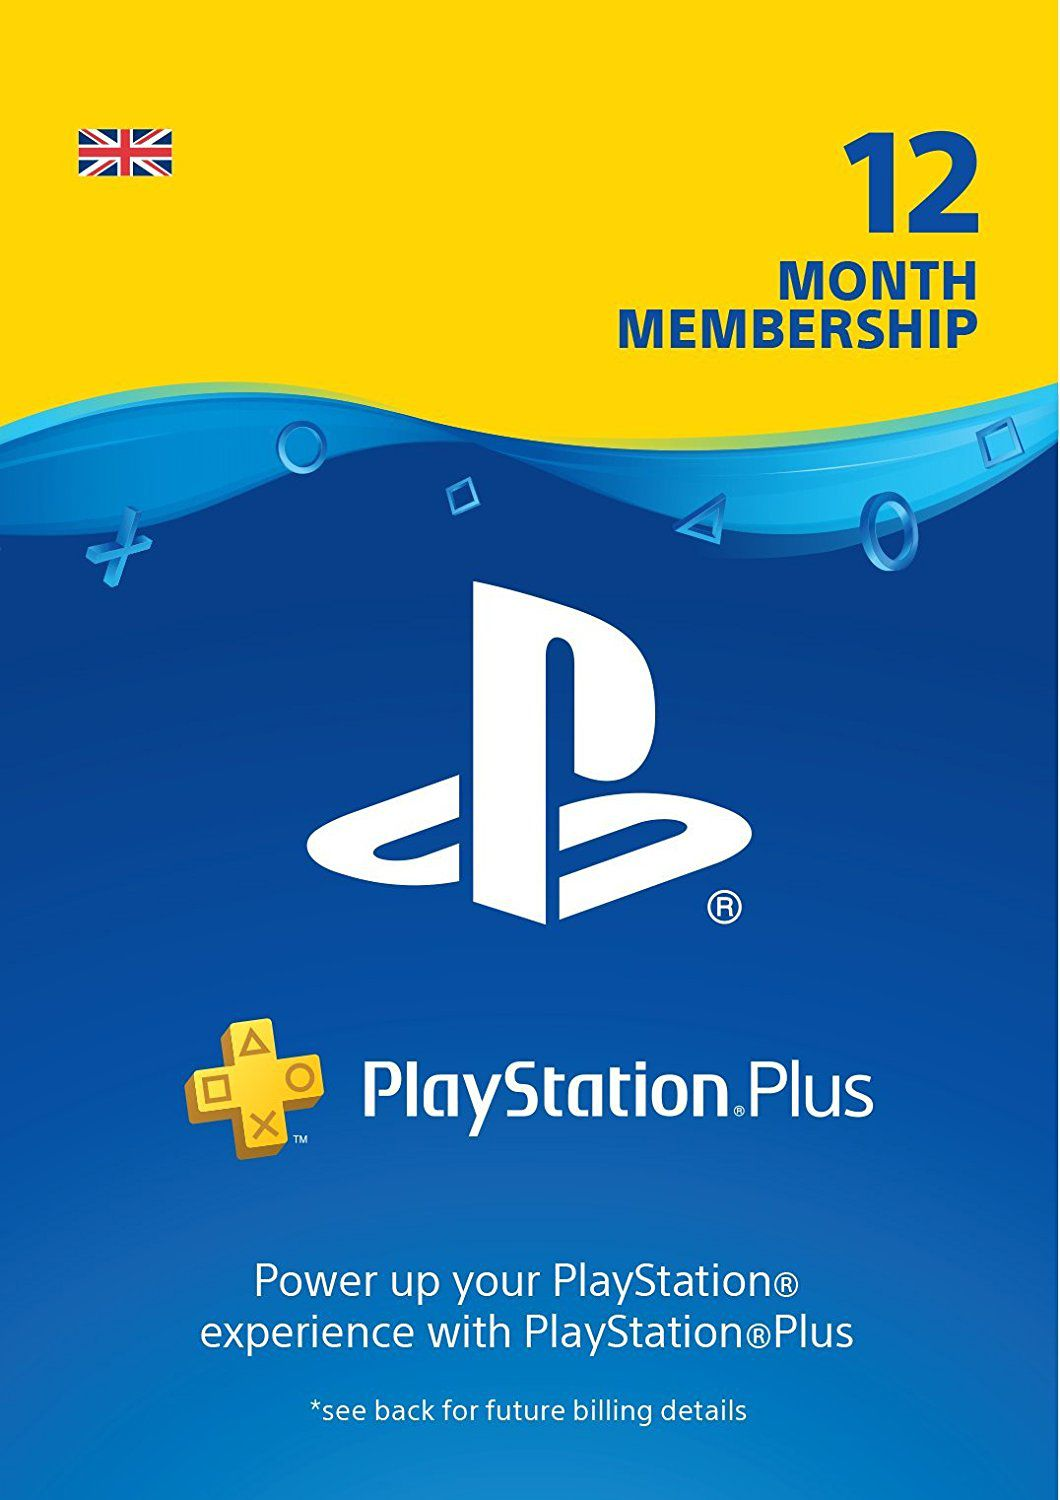 Playstation Plus 12 Meses Comprar Cartão Playstation Plus 12 Meses 1 Ano Psn Uk